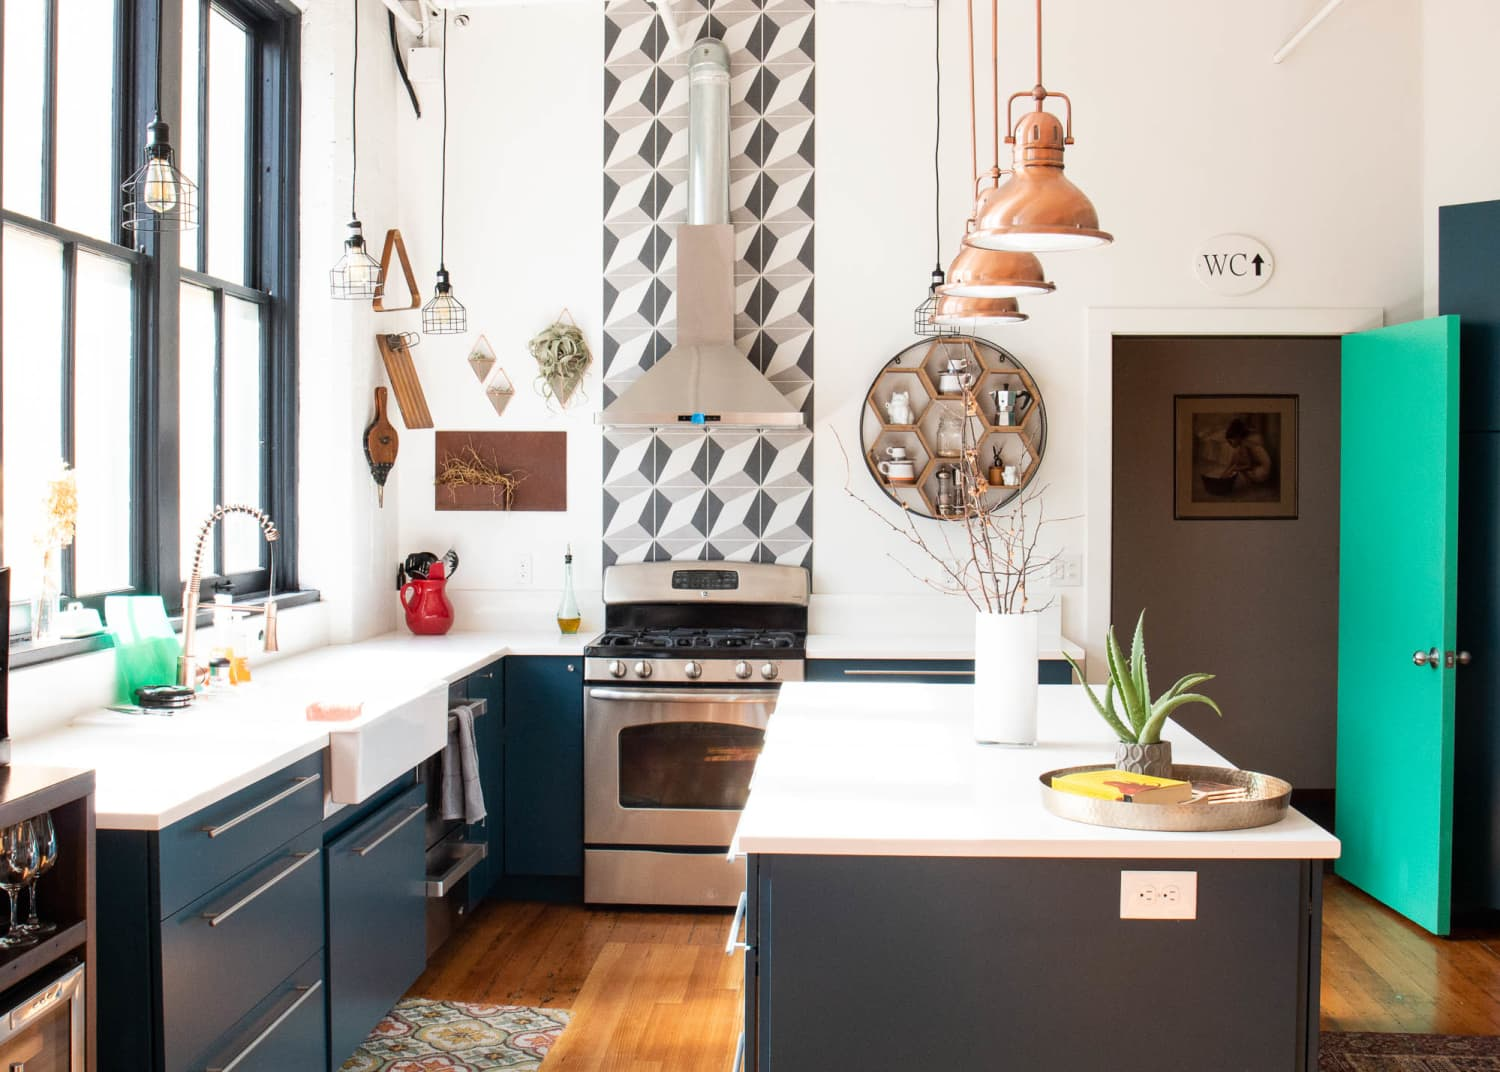 This List Will Help You Declutter Your Kitchen in Just 20 Minutes